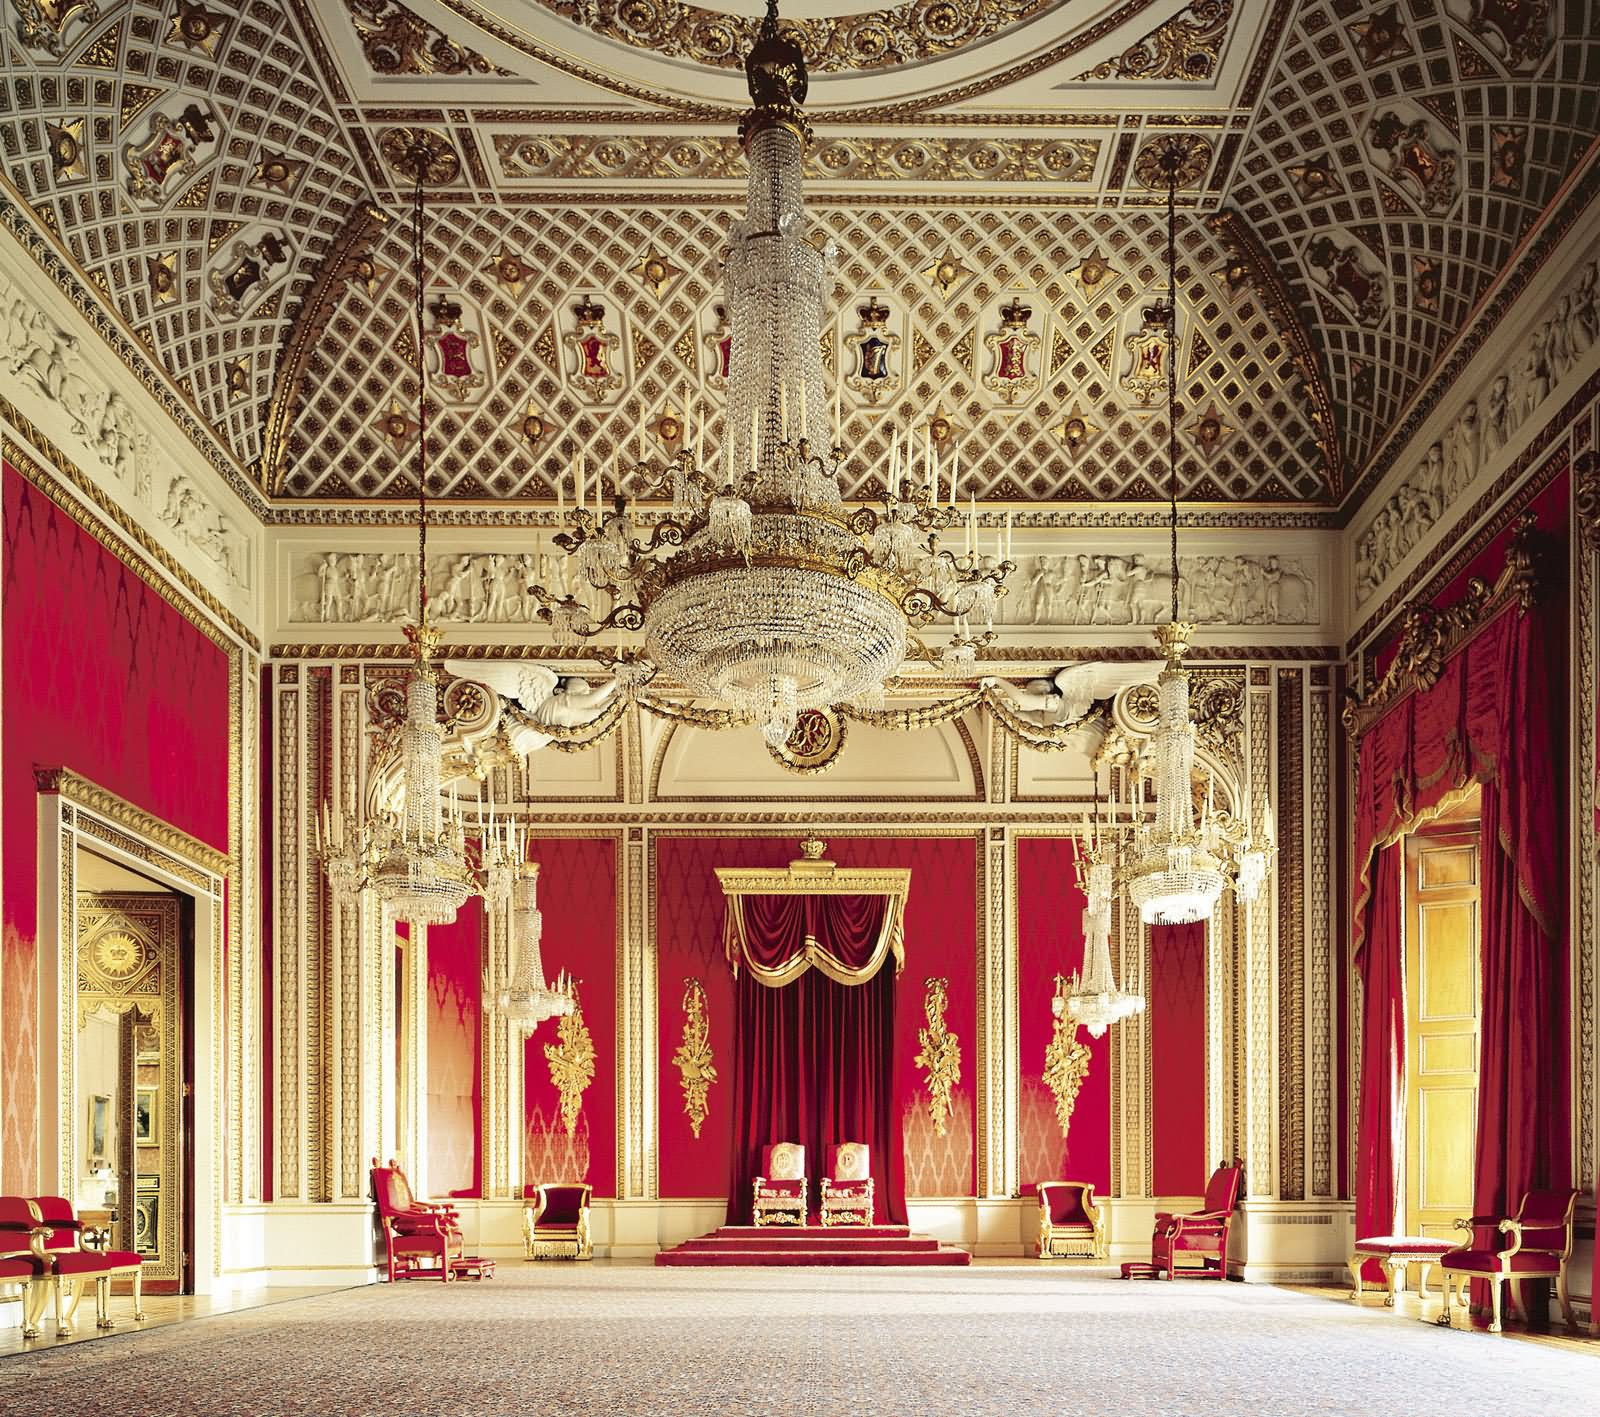 Throne Room Inside Buckingham Palace - THE MOST BEAUTIFUL INTERIOR PICTURES OF BUCKINGHAM PALACE LONDON